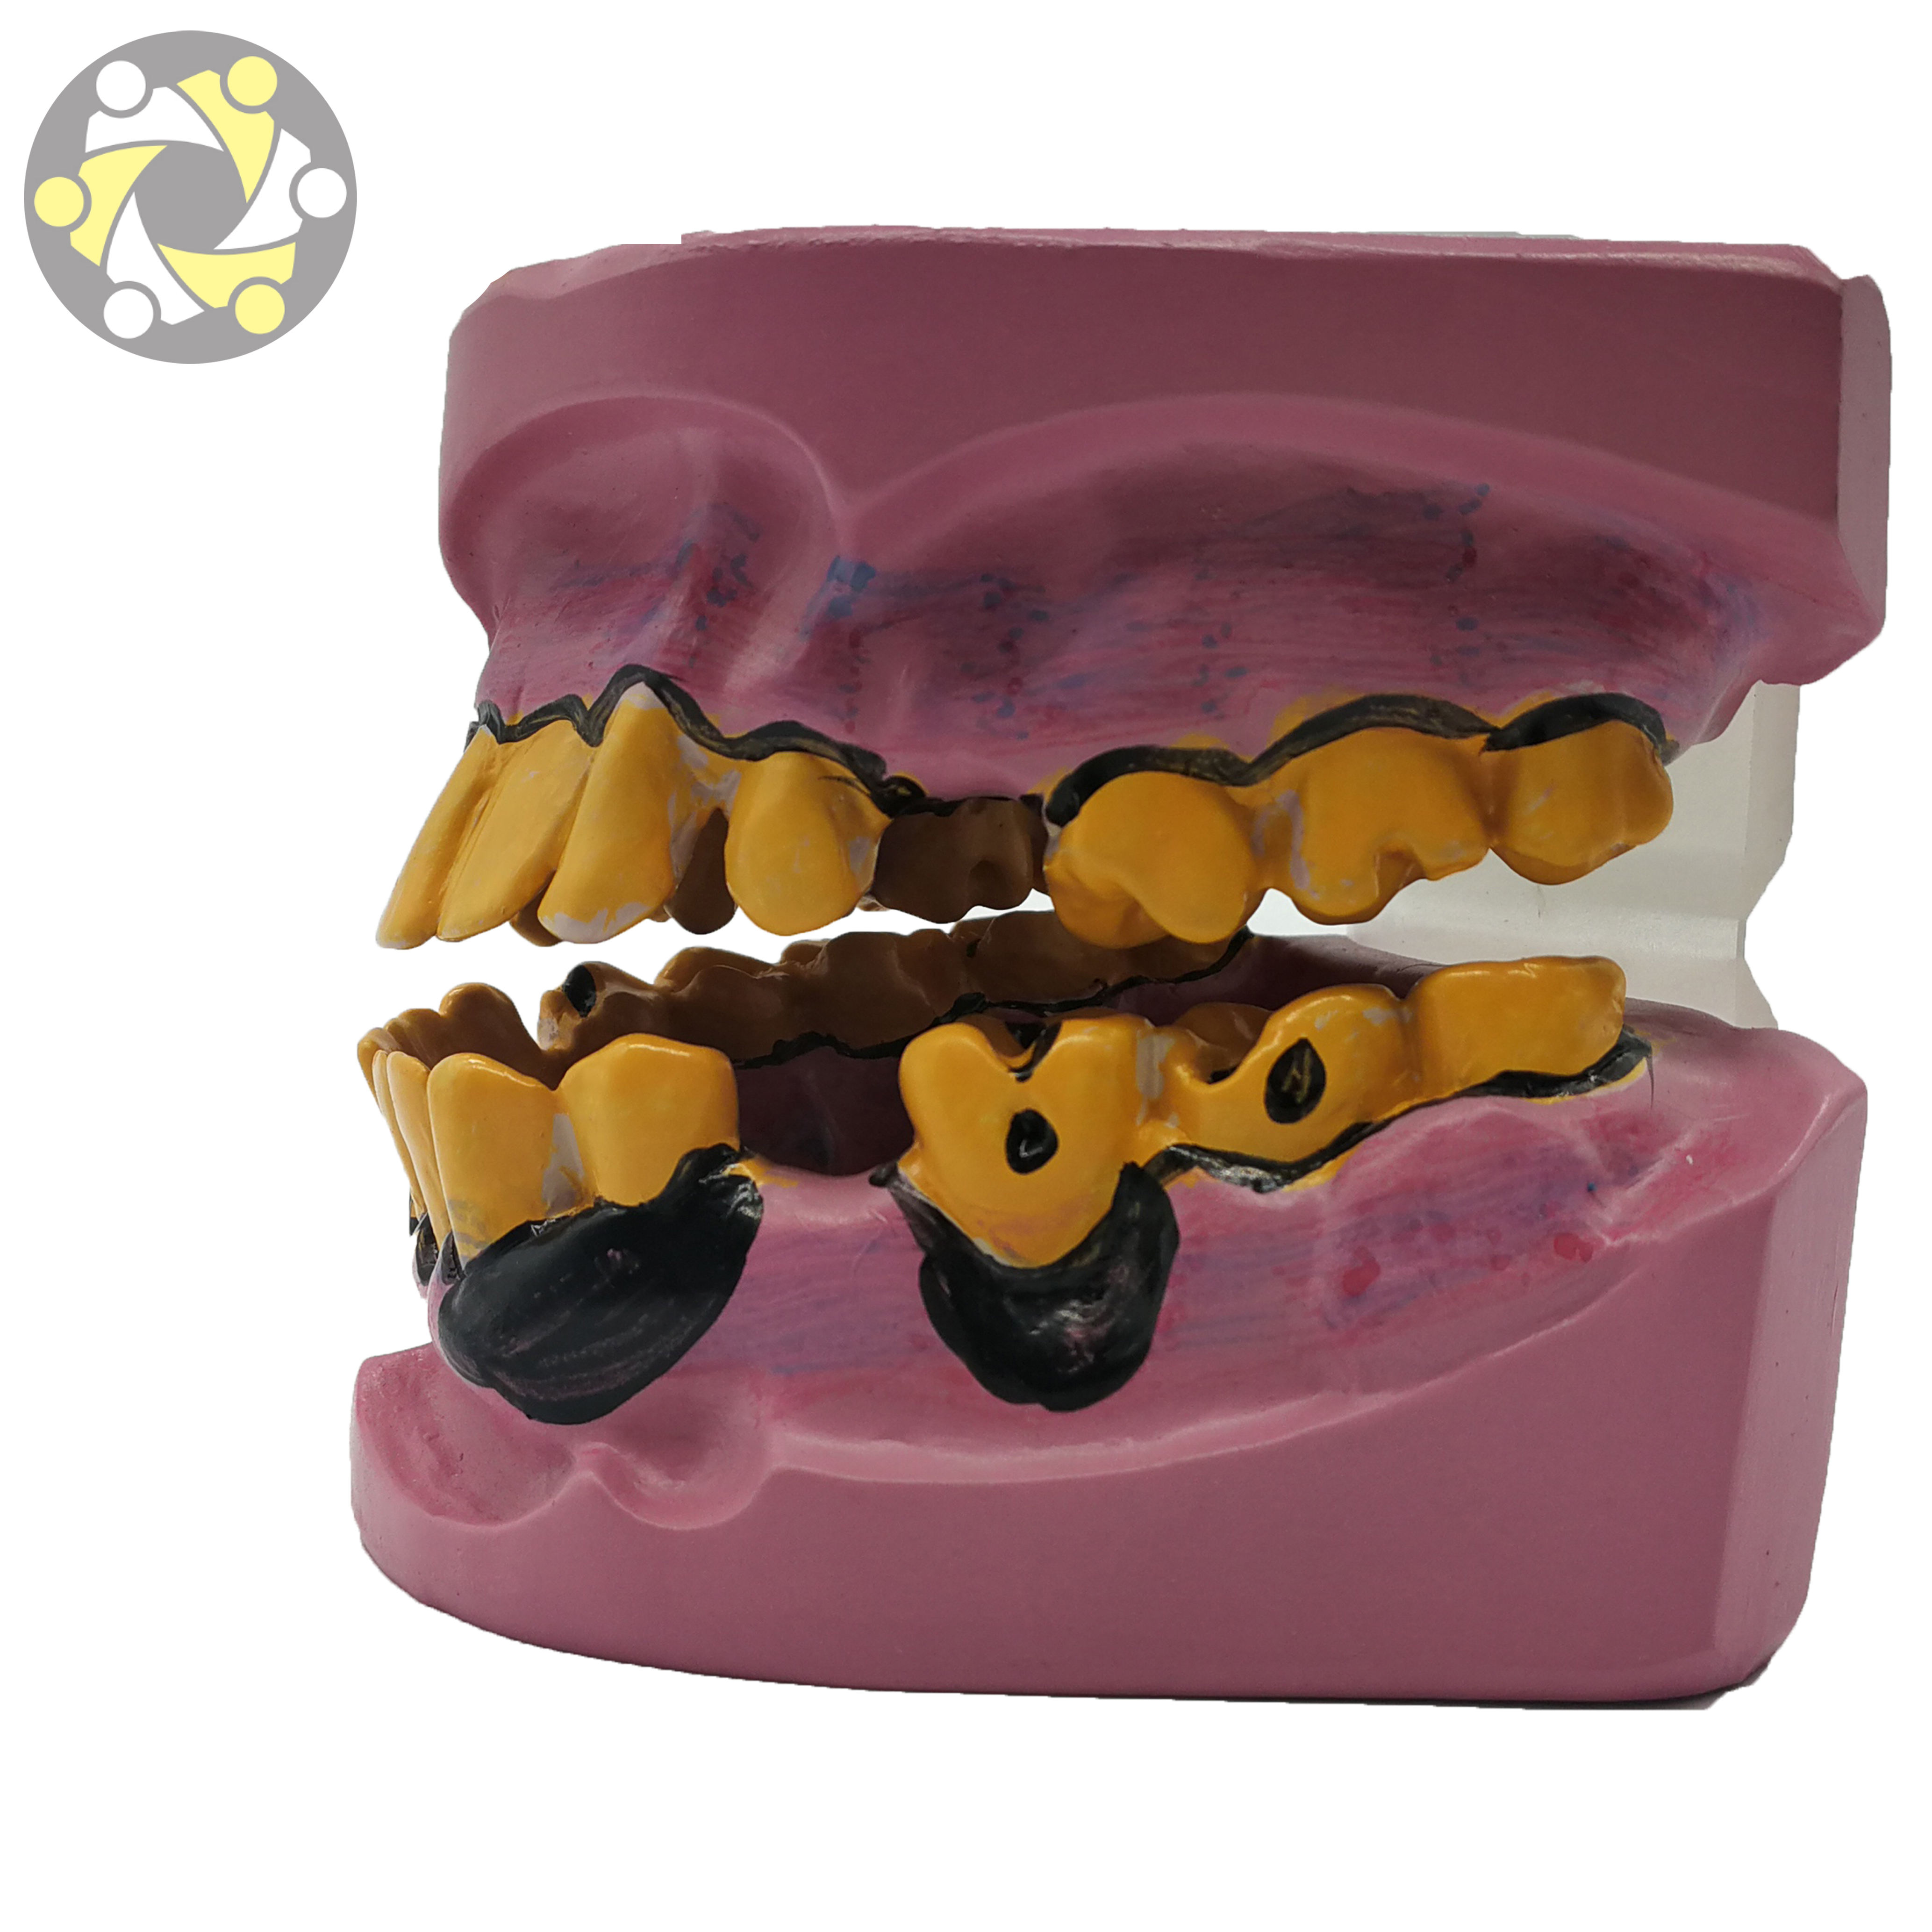 teeth dental practice model yellow malocclusion teeth jaw model of science medical